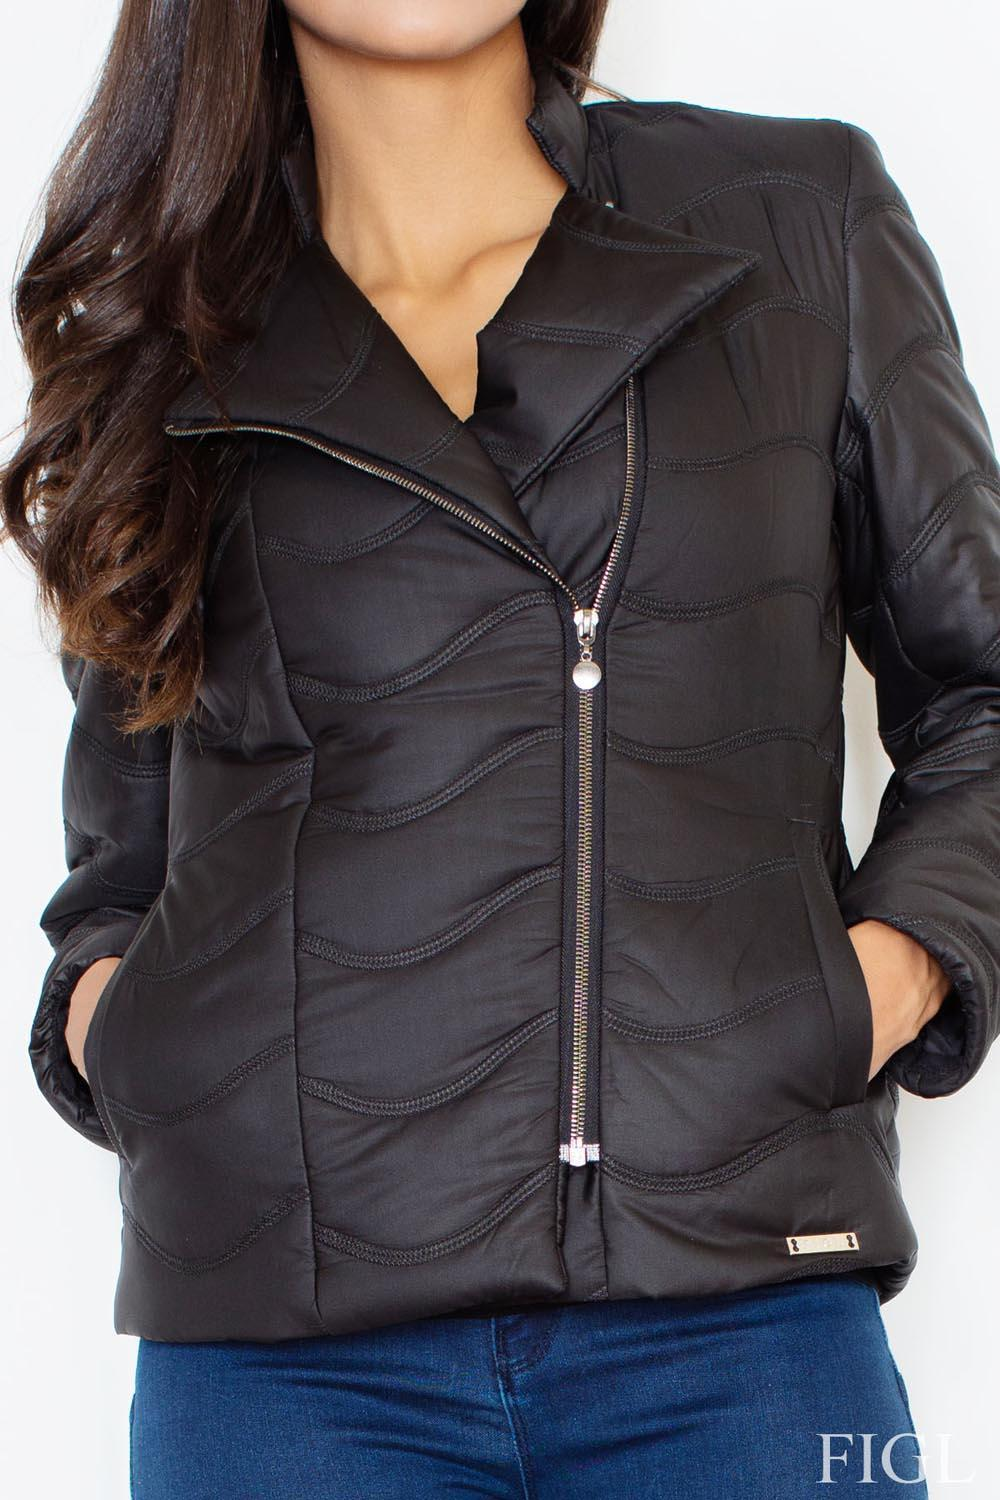 Black Figl Jackets & Coats